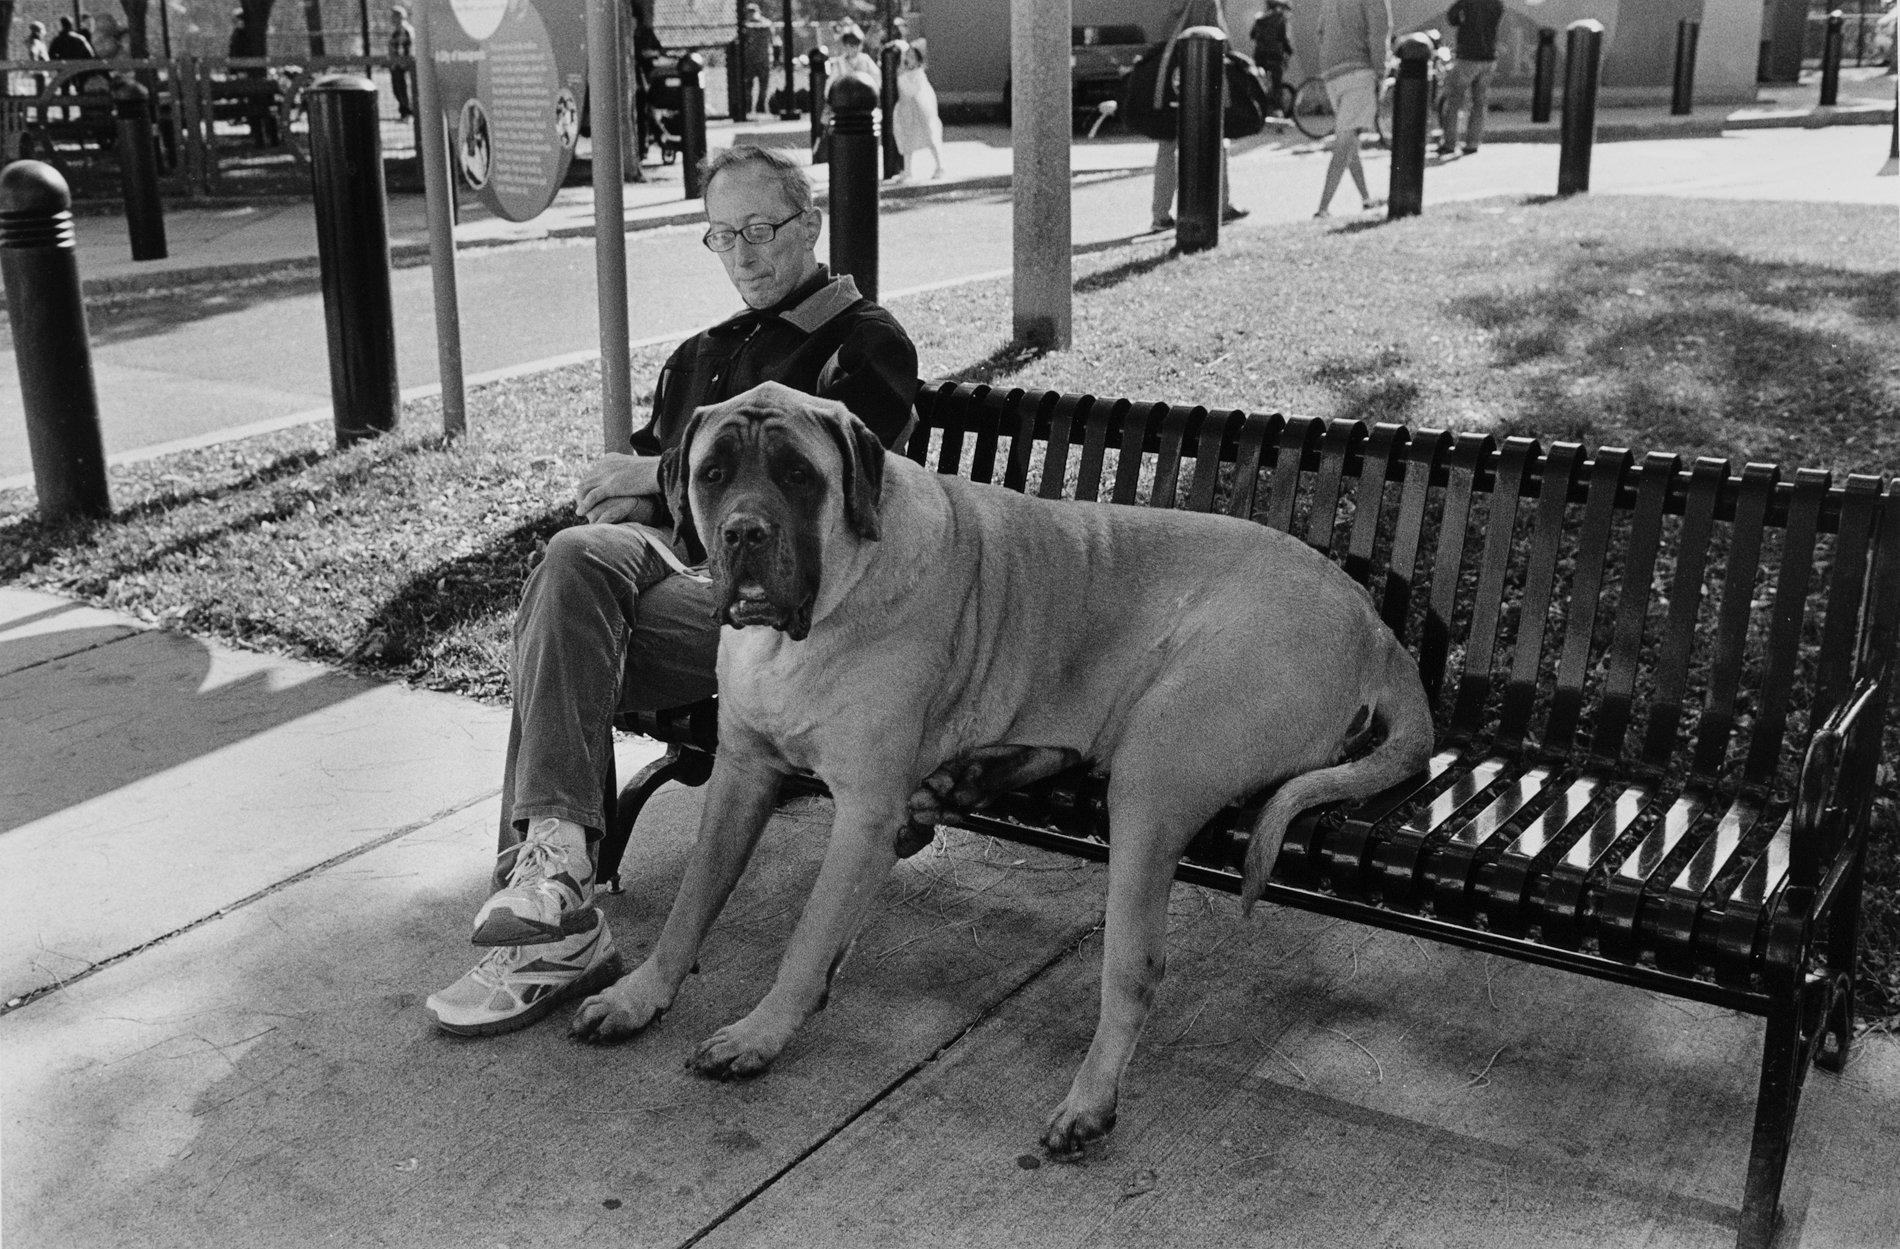 Dog on bench.jpg